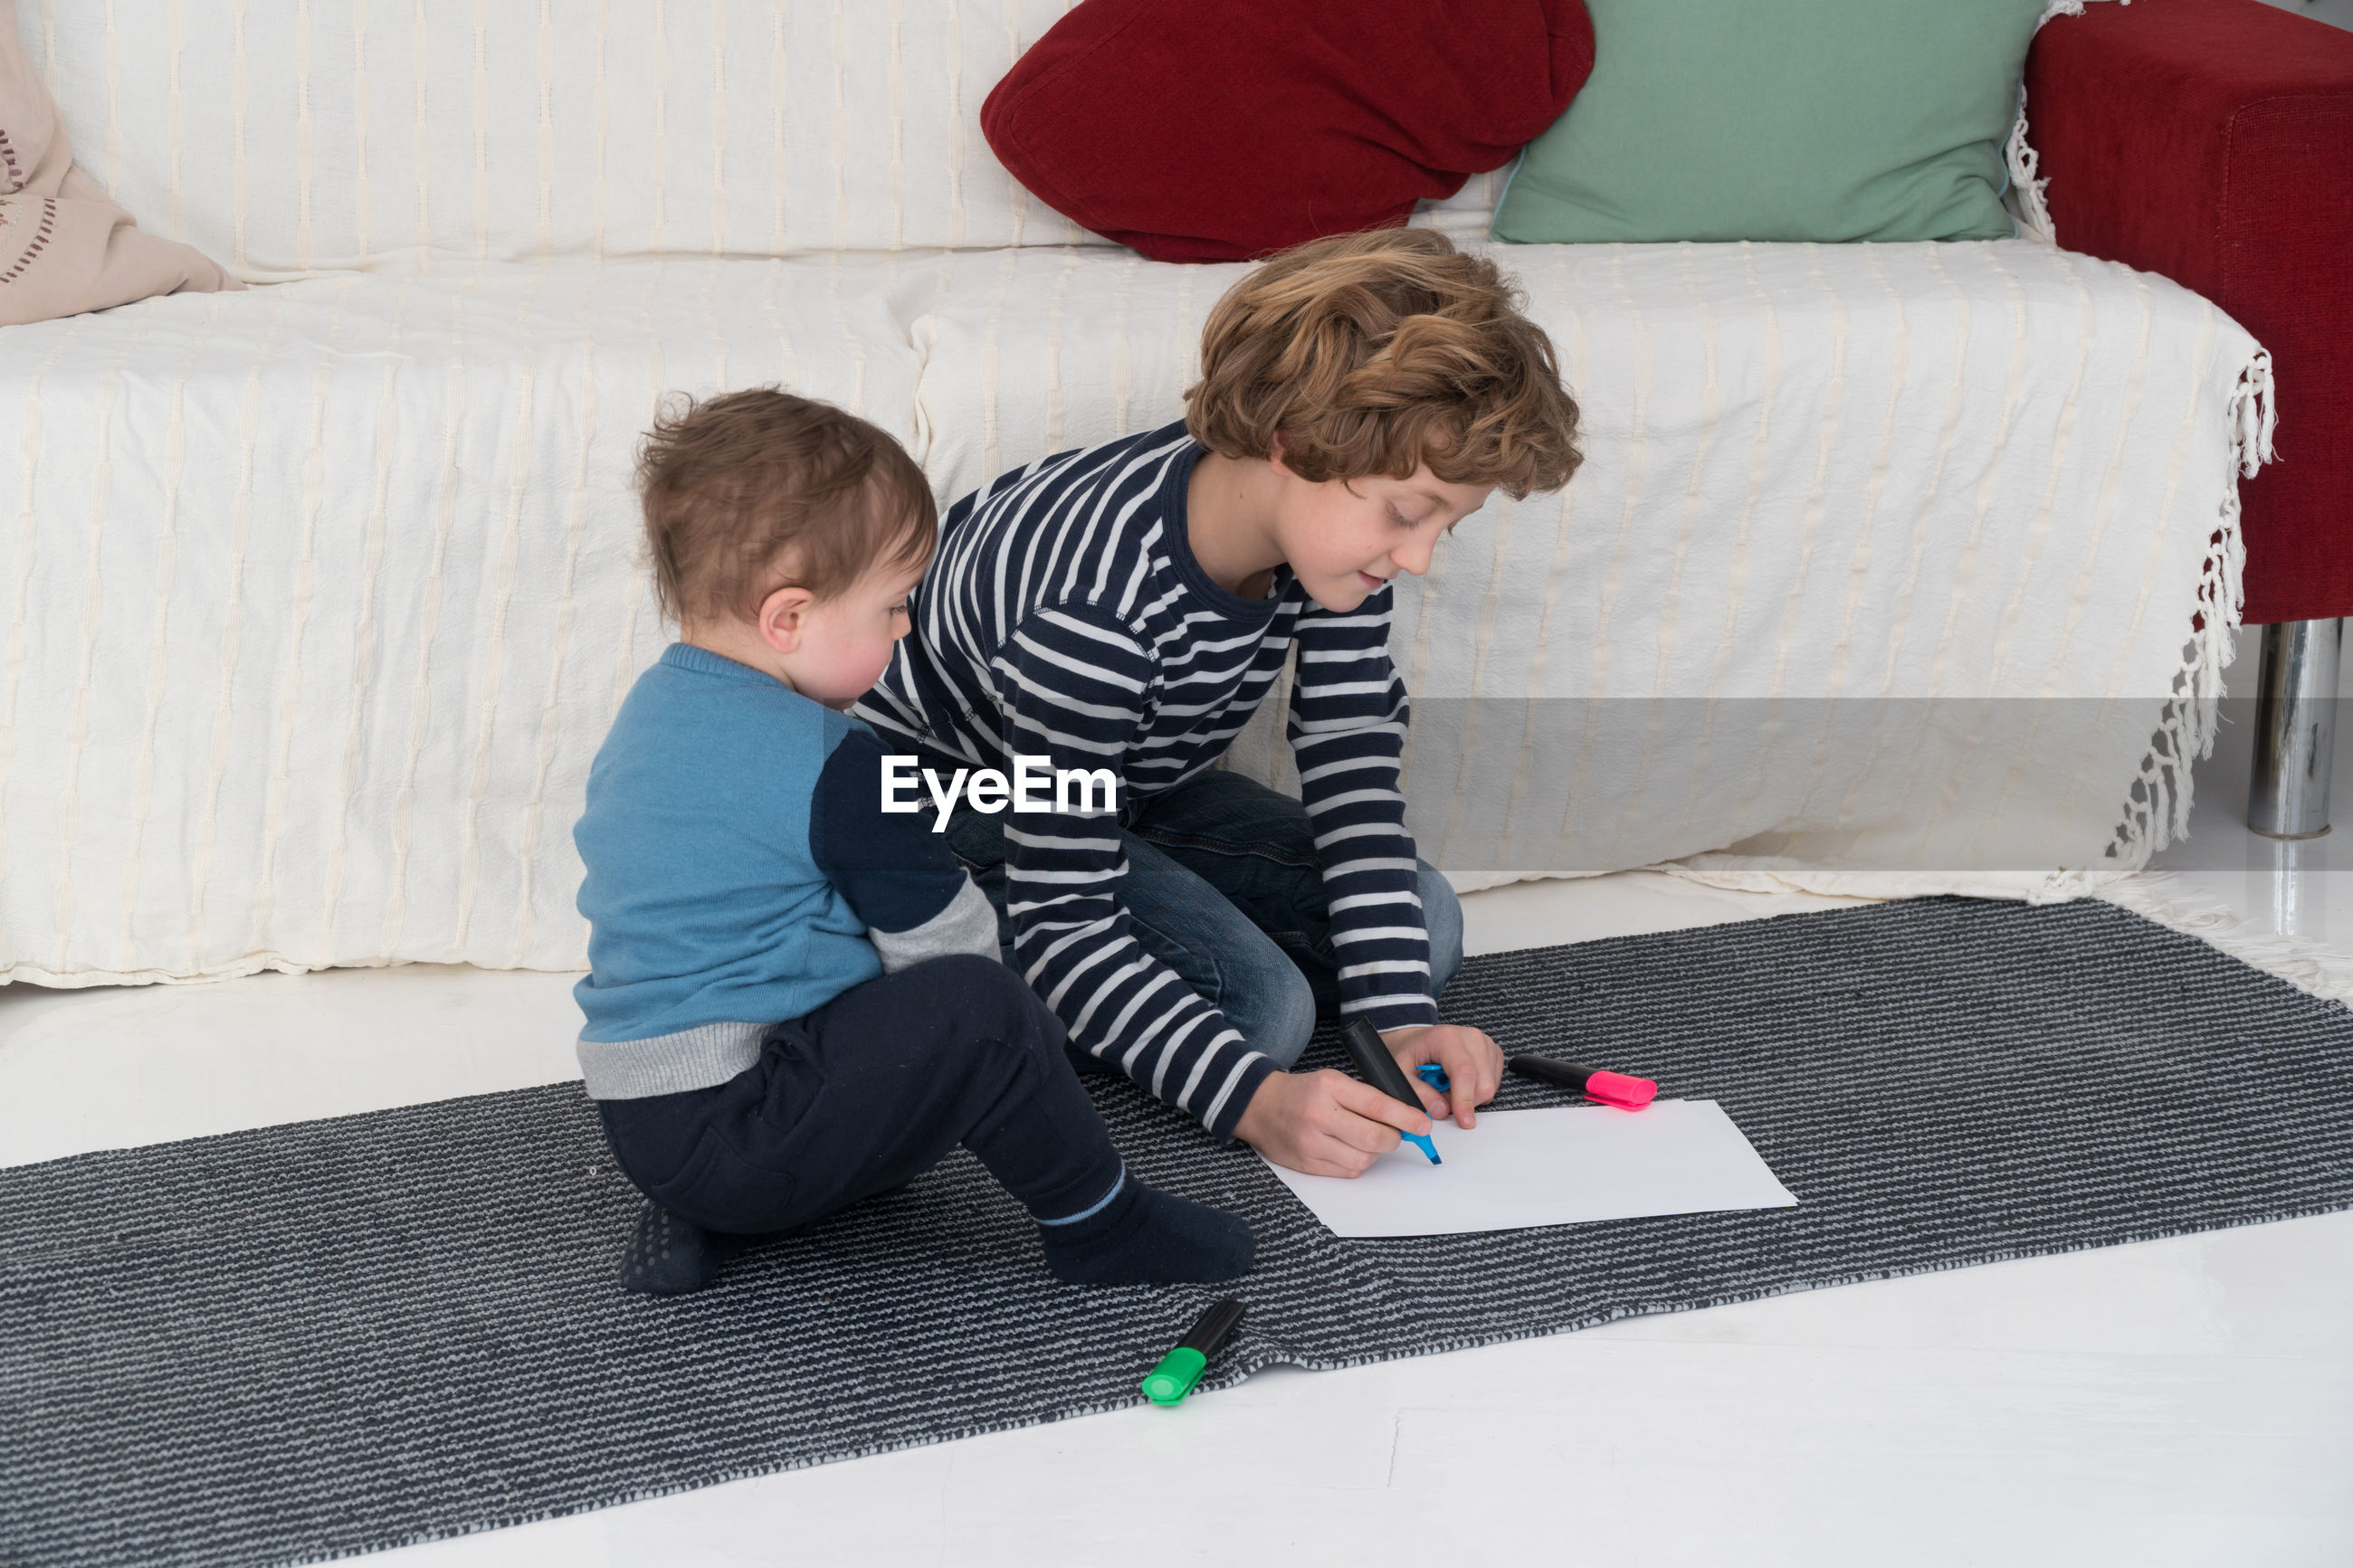 Boy drawing on paper while kneeling by brother on carpet at home